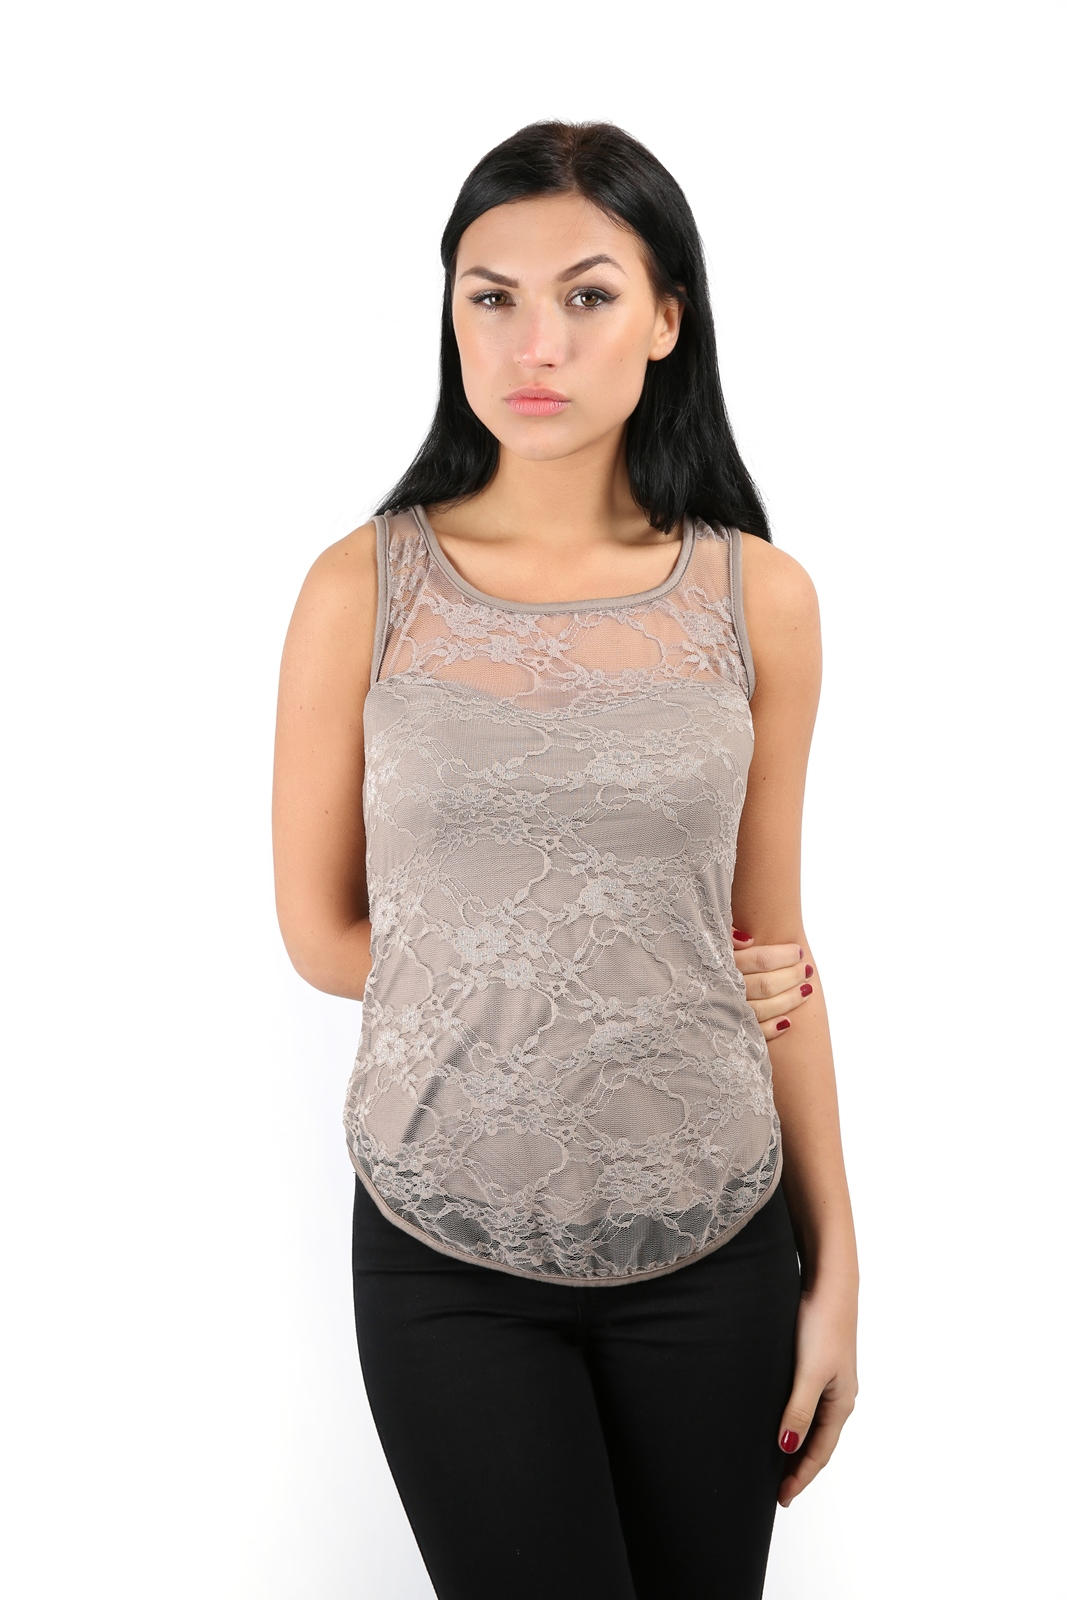 Ladies Sleeveless Stretch Bodycon Floral Lace Top Womens